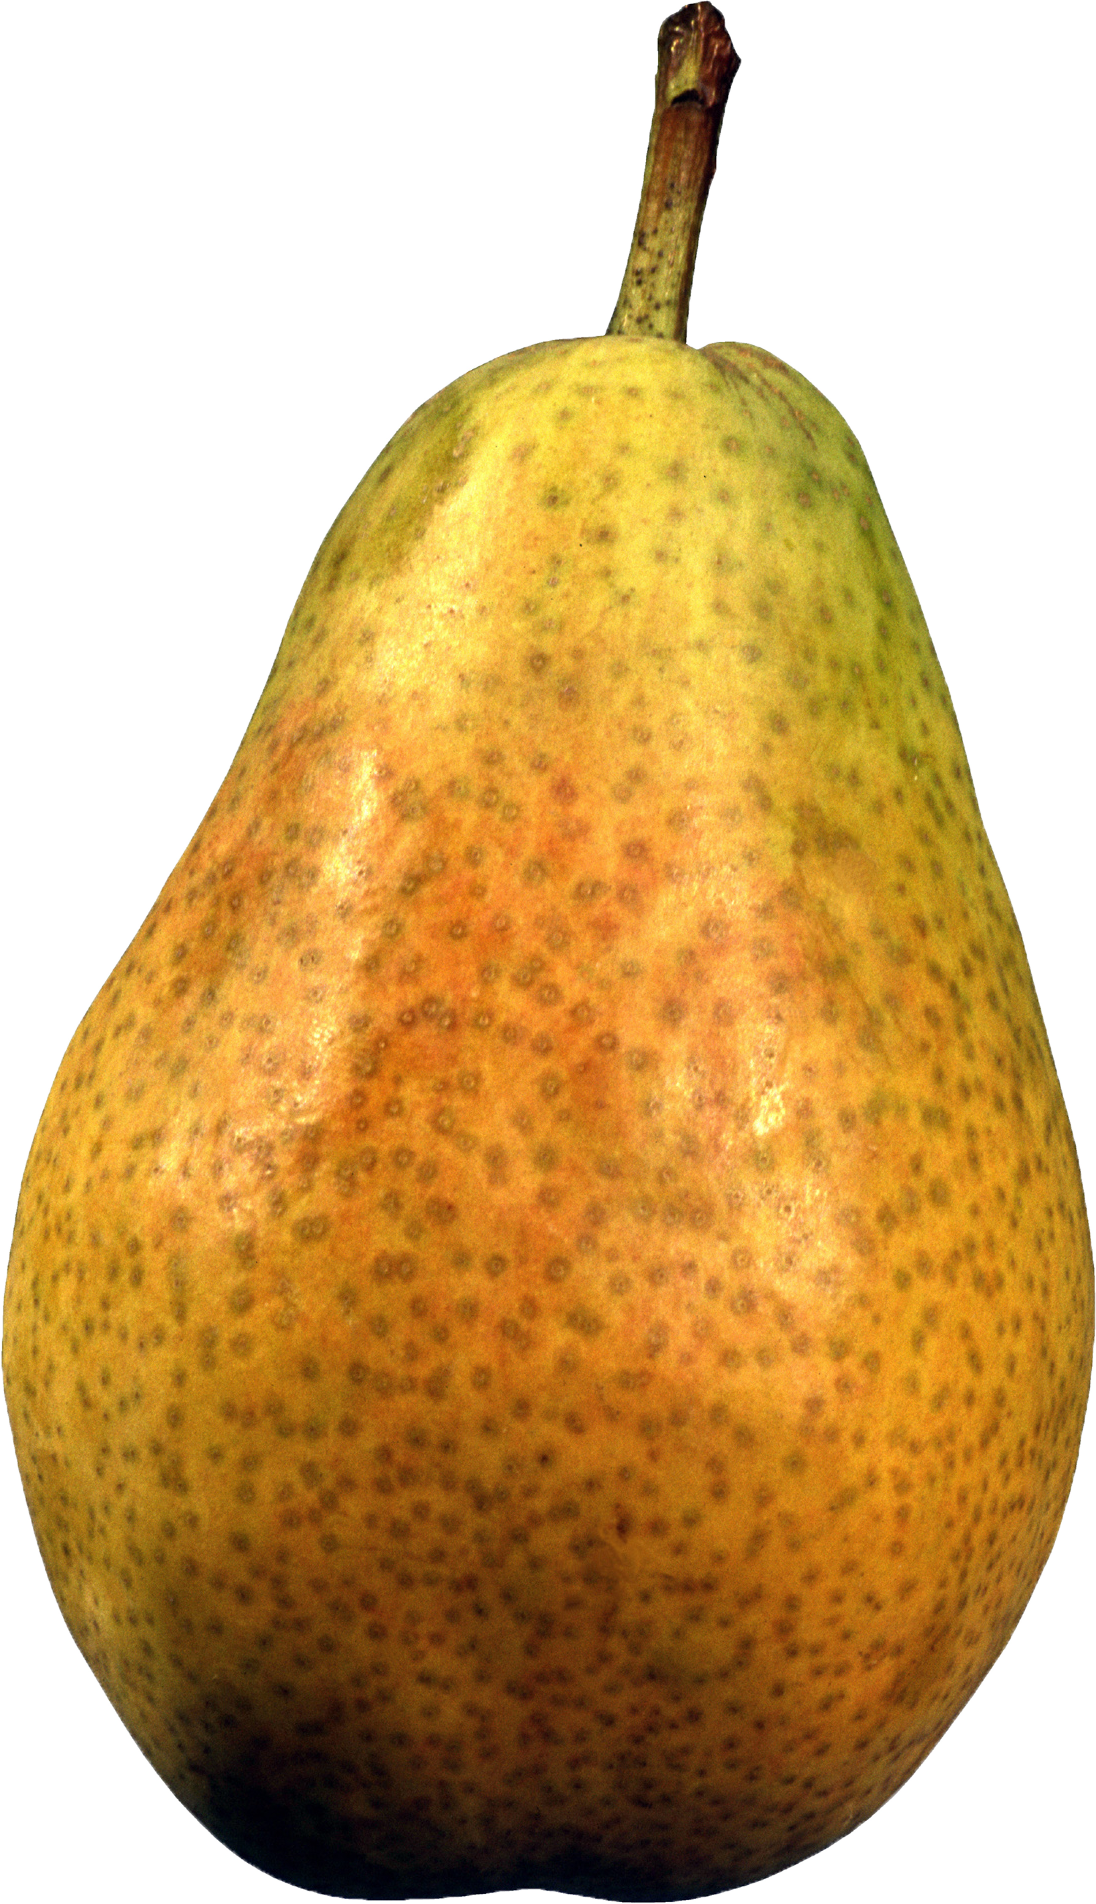 Pear clipart jambu. Index of image obst